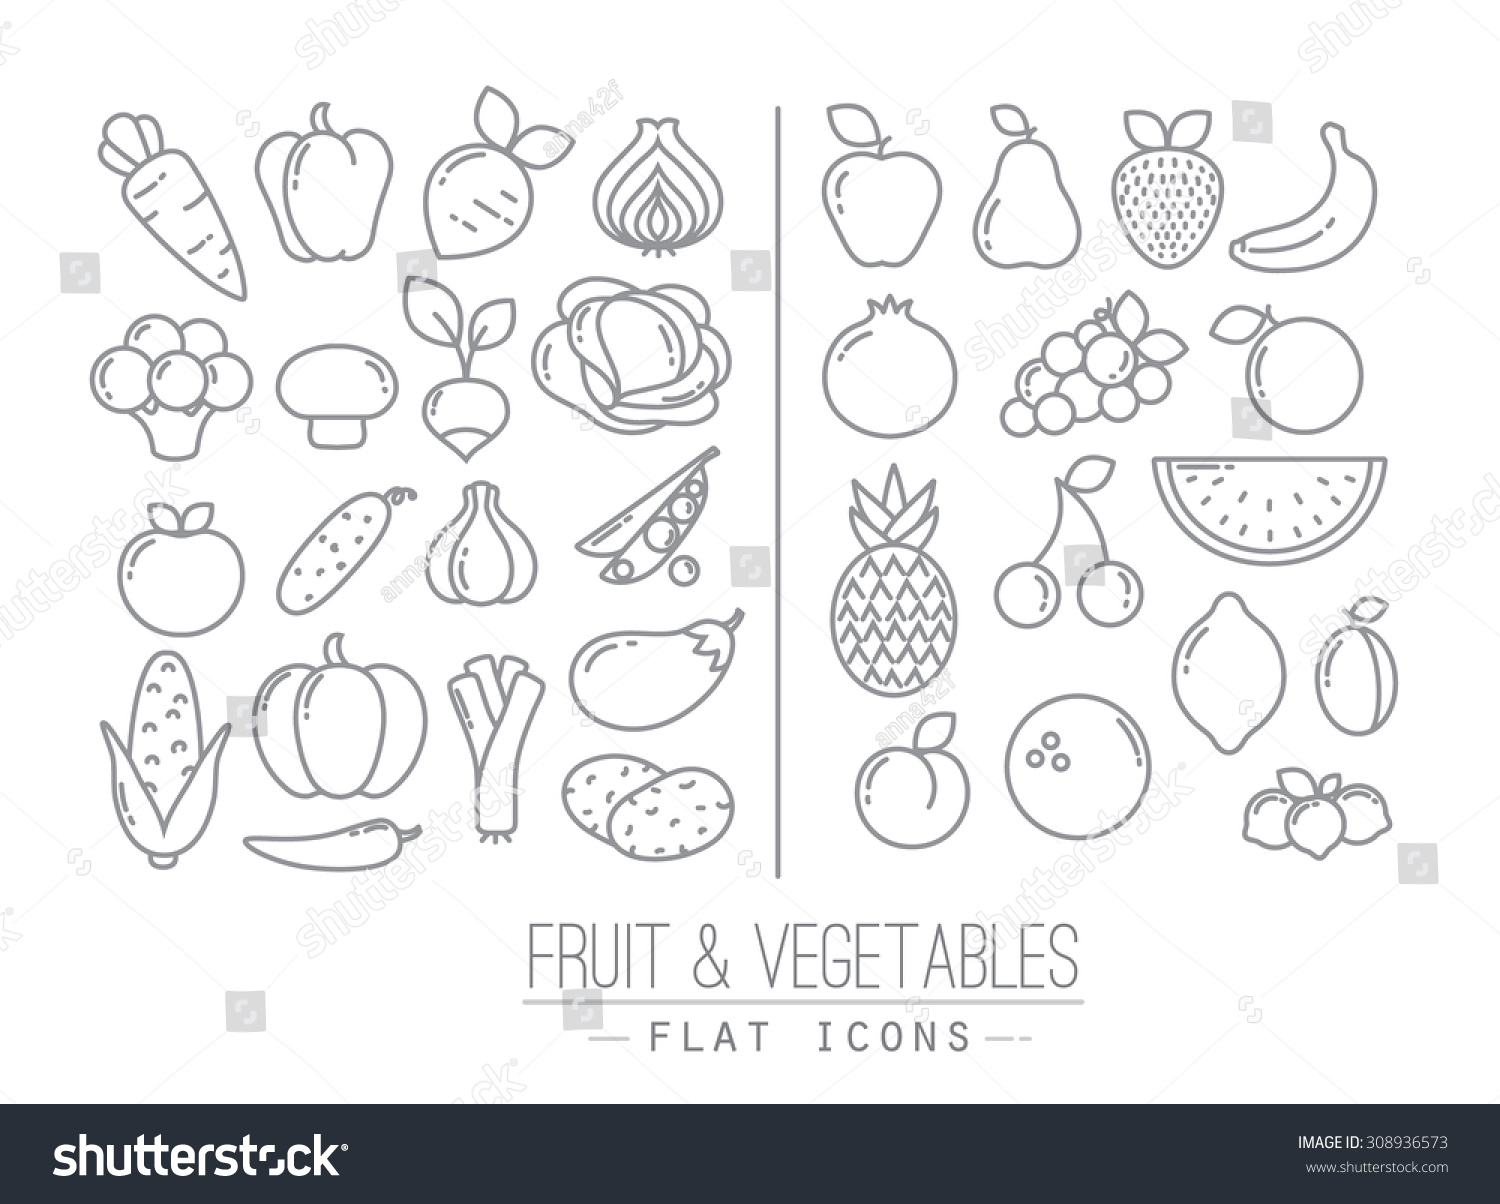 Line Art Vegetables : Set flat fruits vegetables icons drawing stock vector